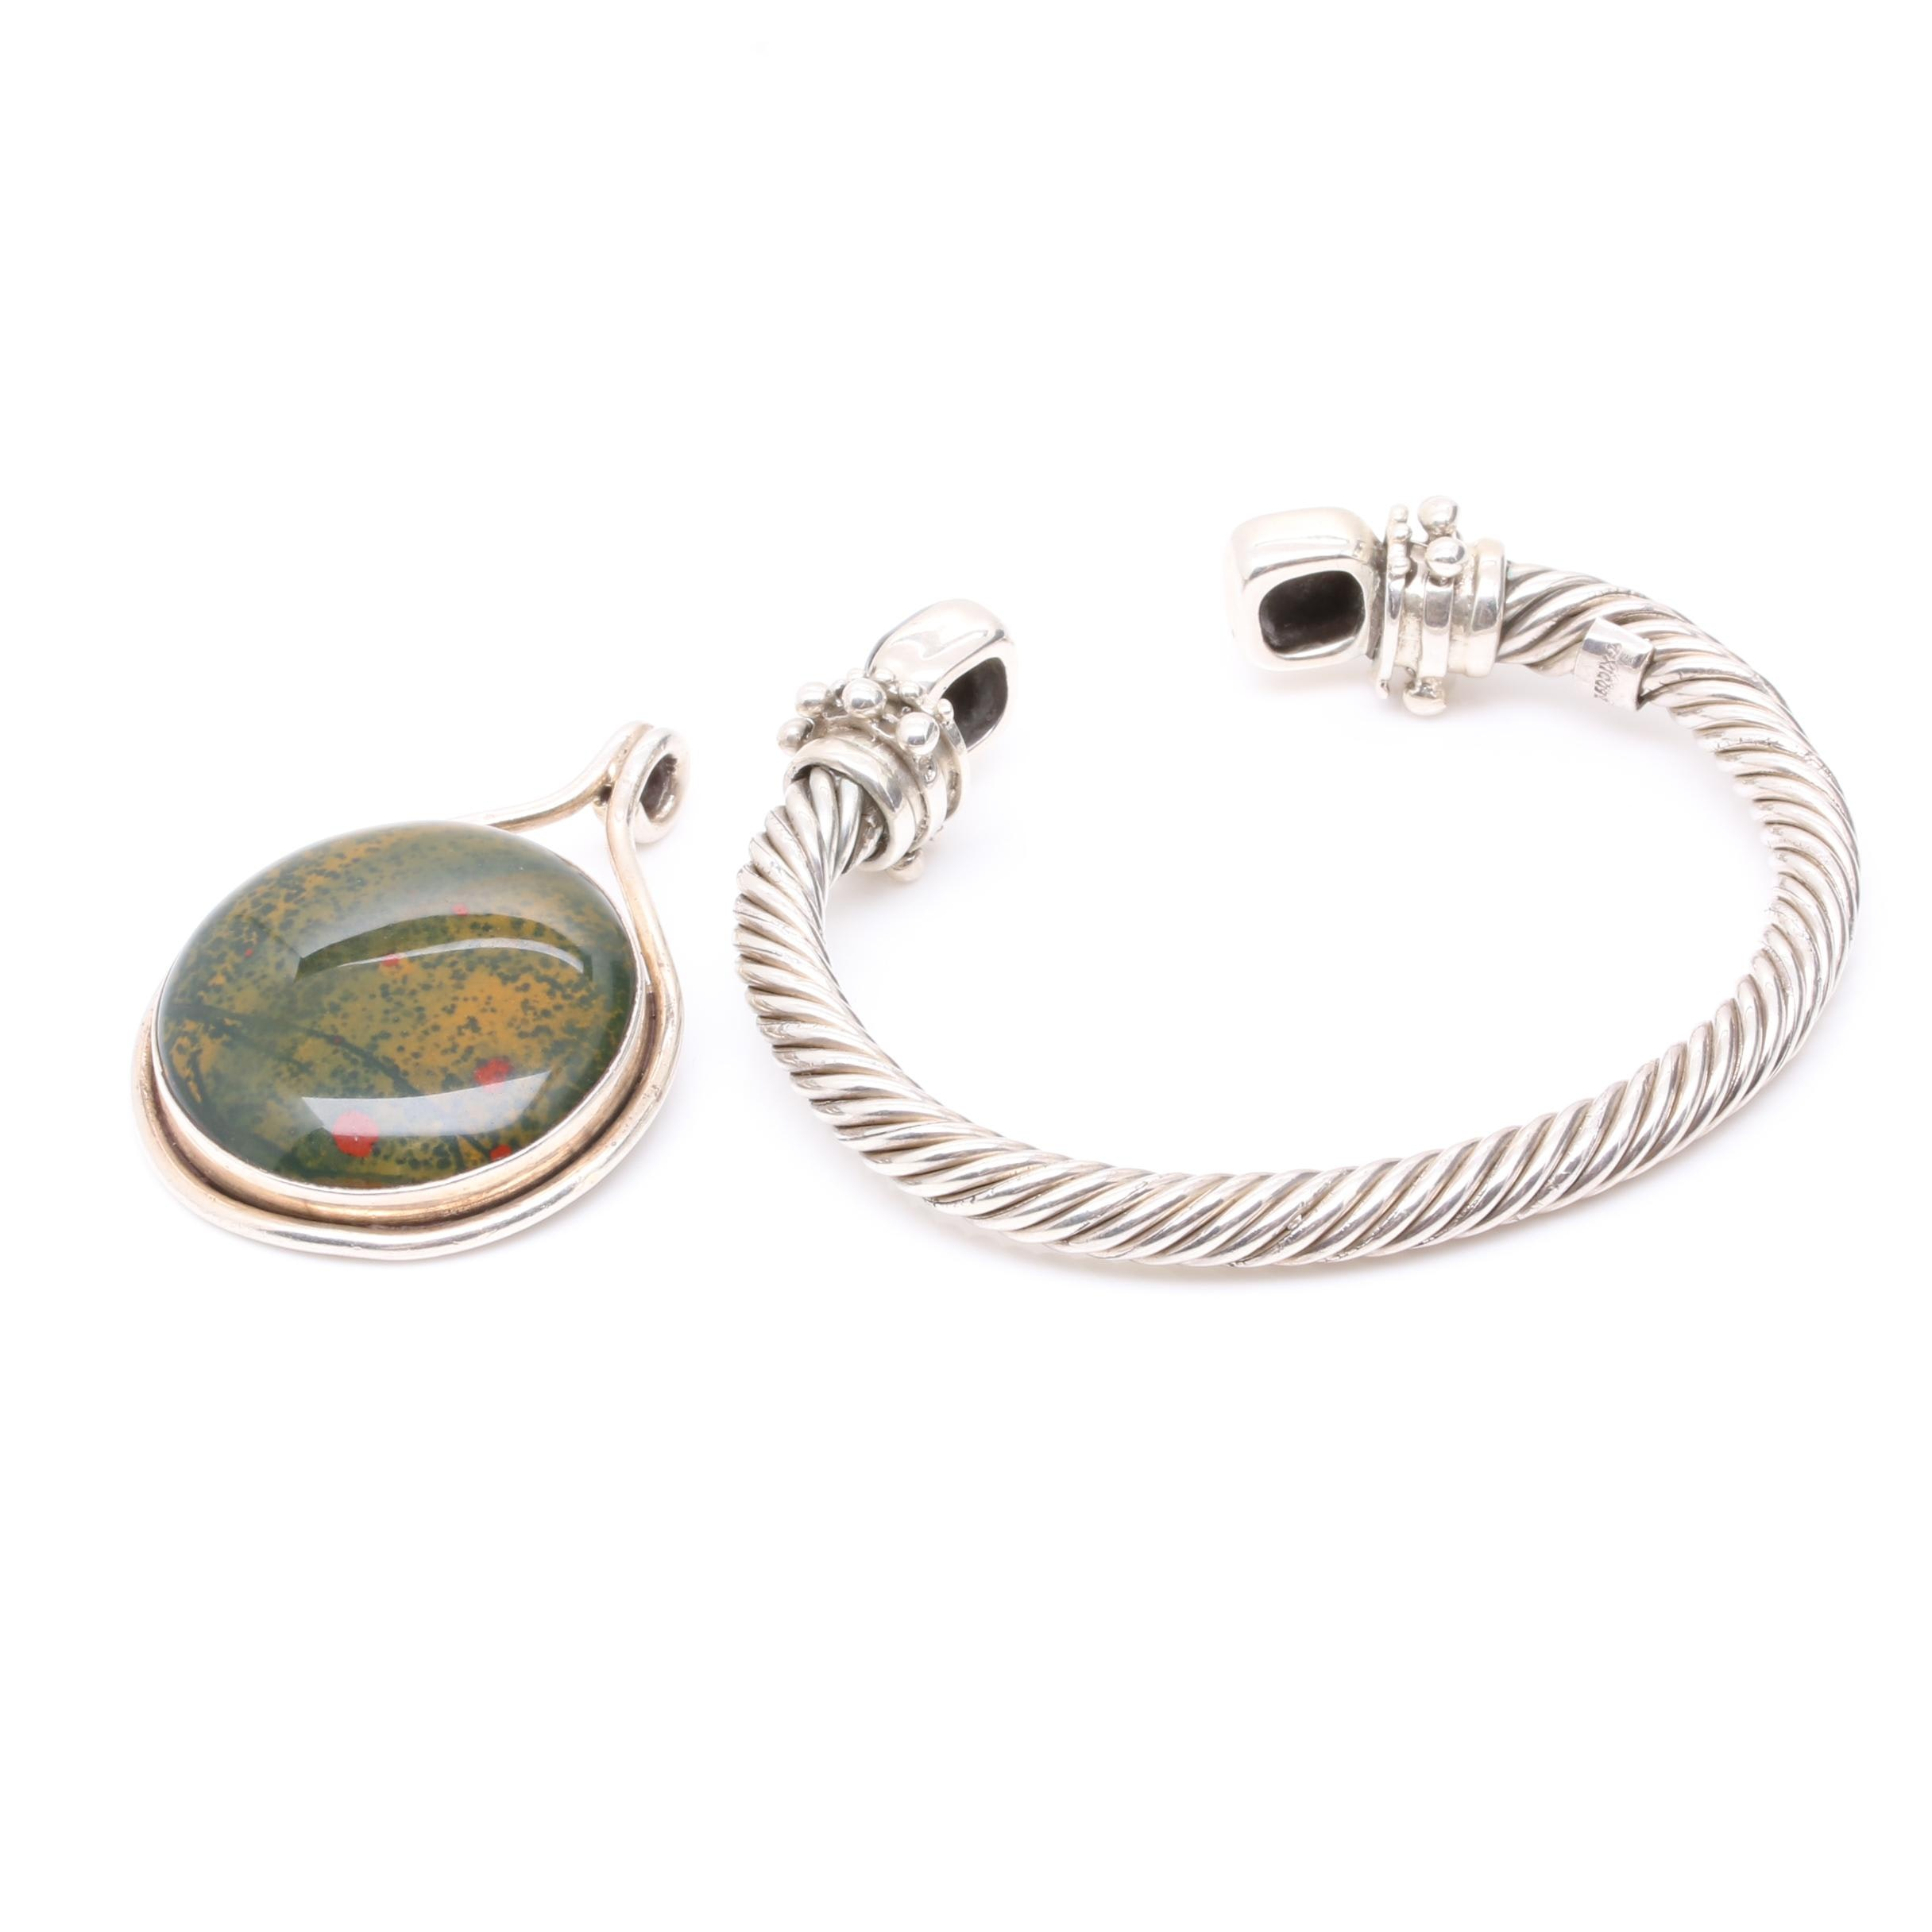 Sterling Silver Pendant and Bracelet Selection Featuring Jasper